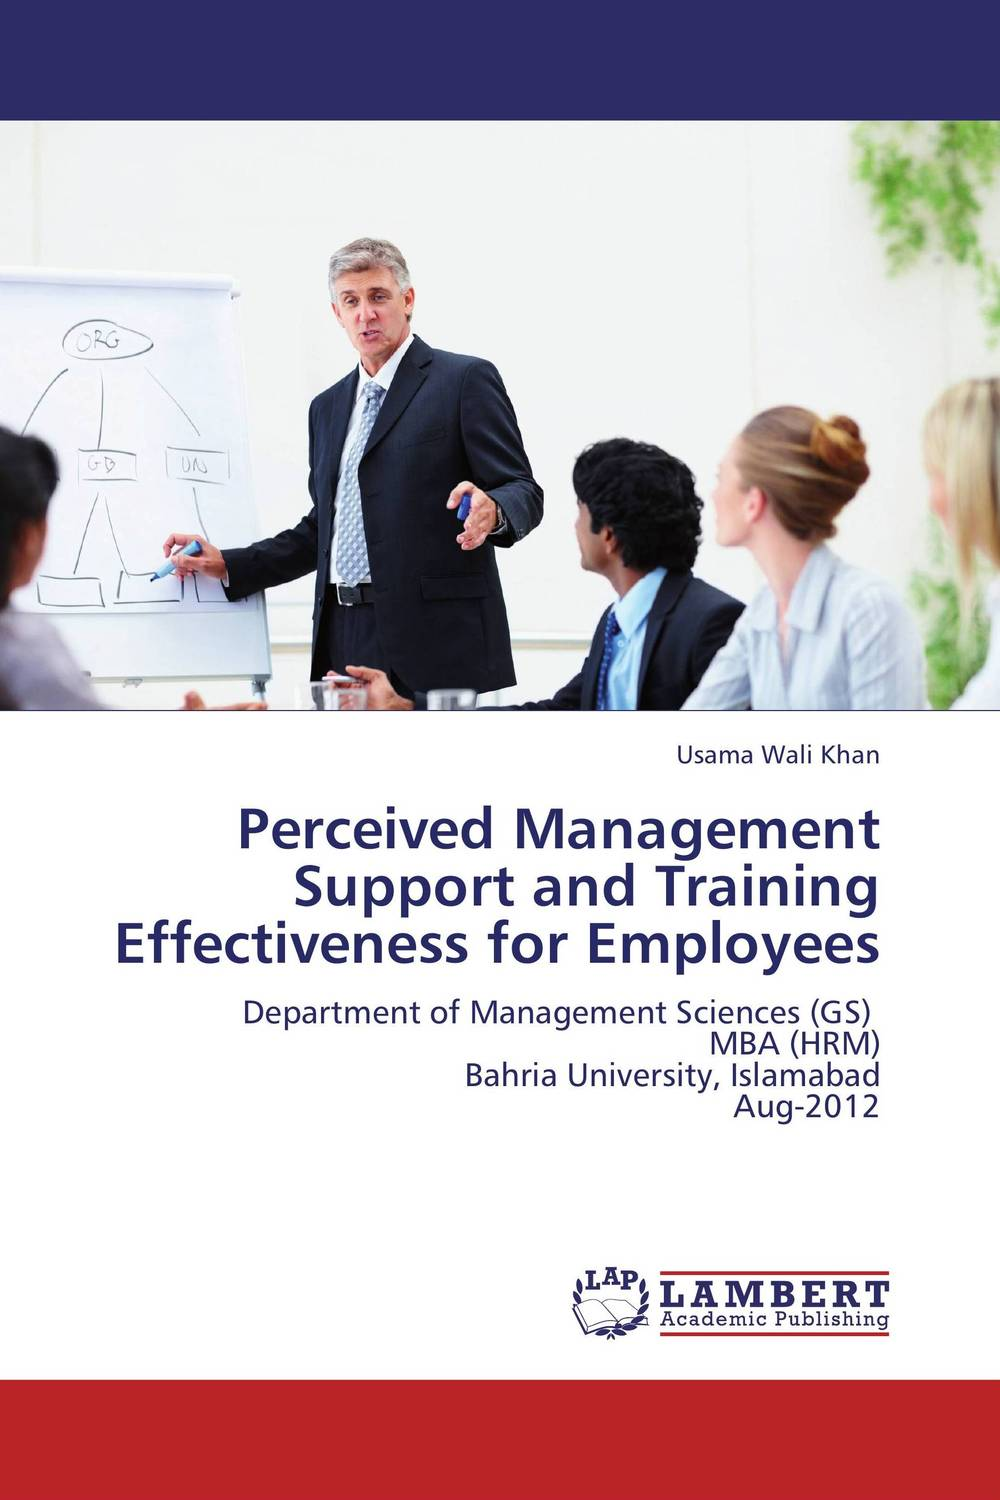 Perceived Management Support and Training Effectiveness for Employees michel chevalier luxury retail management how the world s top brands provide quality product and service support